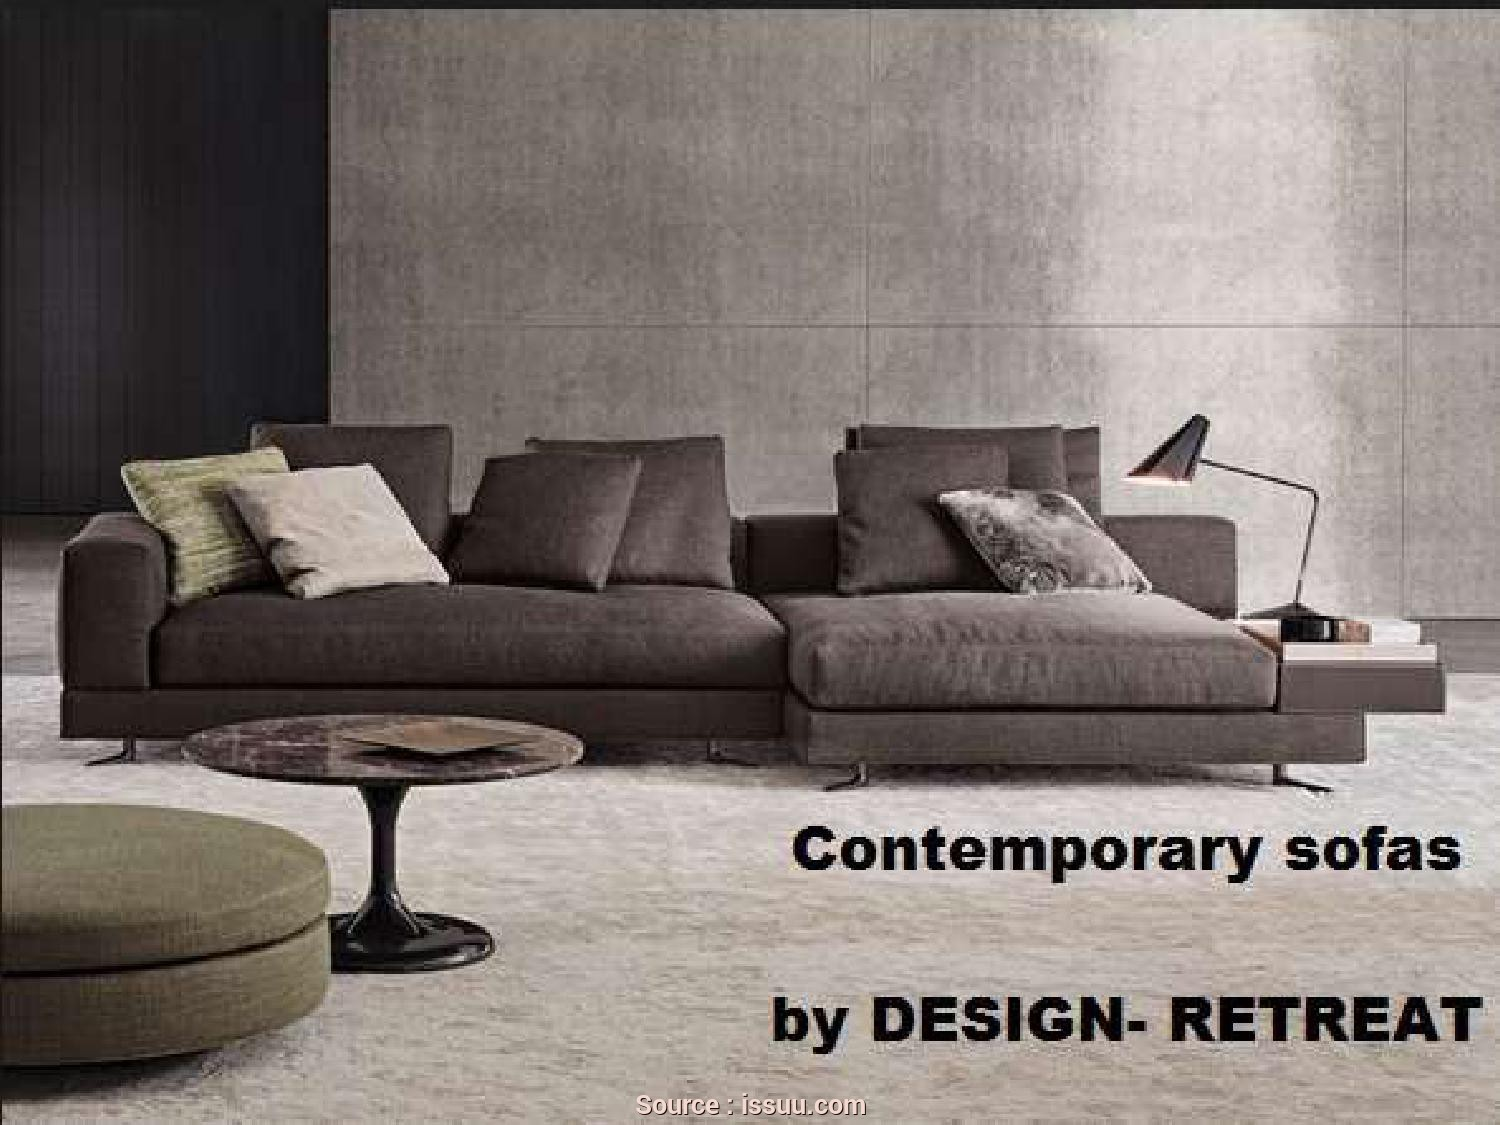 Divani Busnelli Mike, Sbalorditivo Systematic Break Down Of Contemporary Sofas By Design-Retreat, Issuu